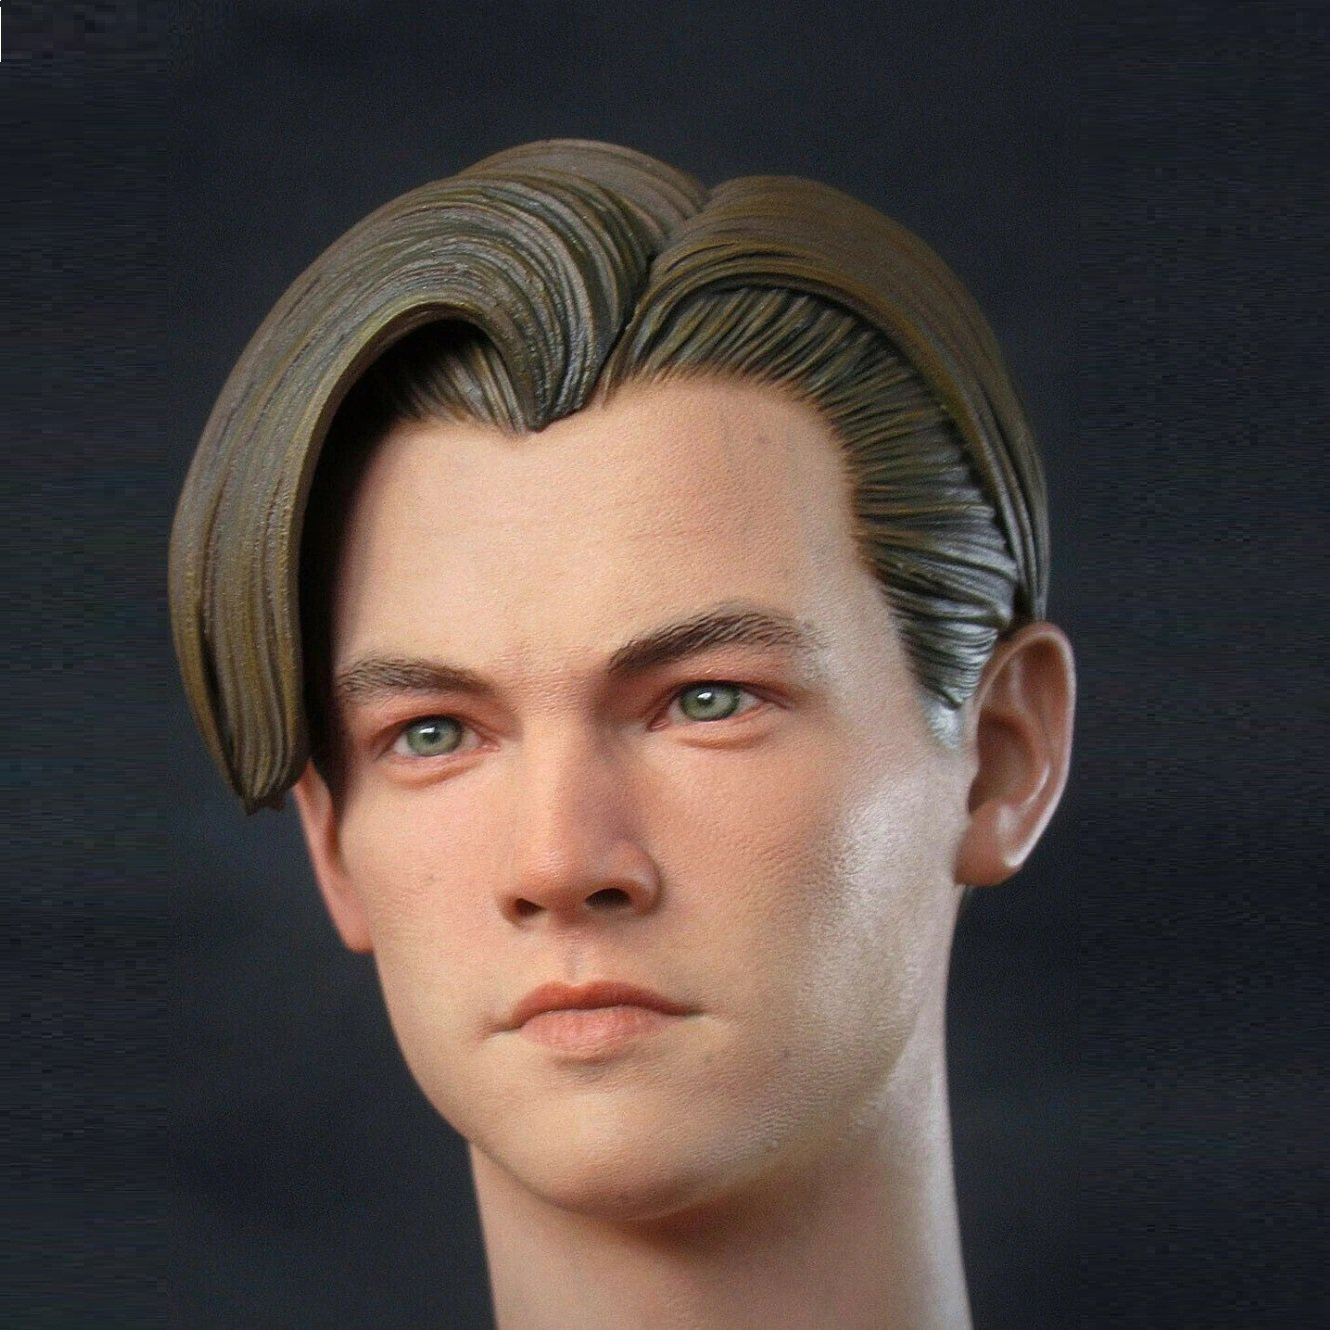 1/6 Leonardo DiCaprio Young Head for 1/12 Action Figures Toys Hobby Games